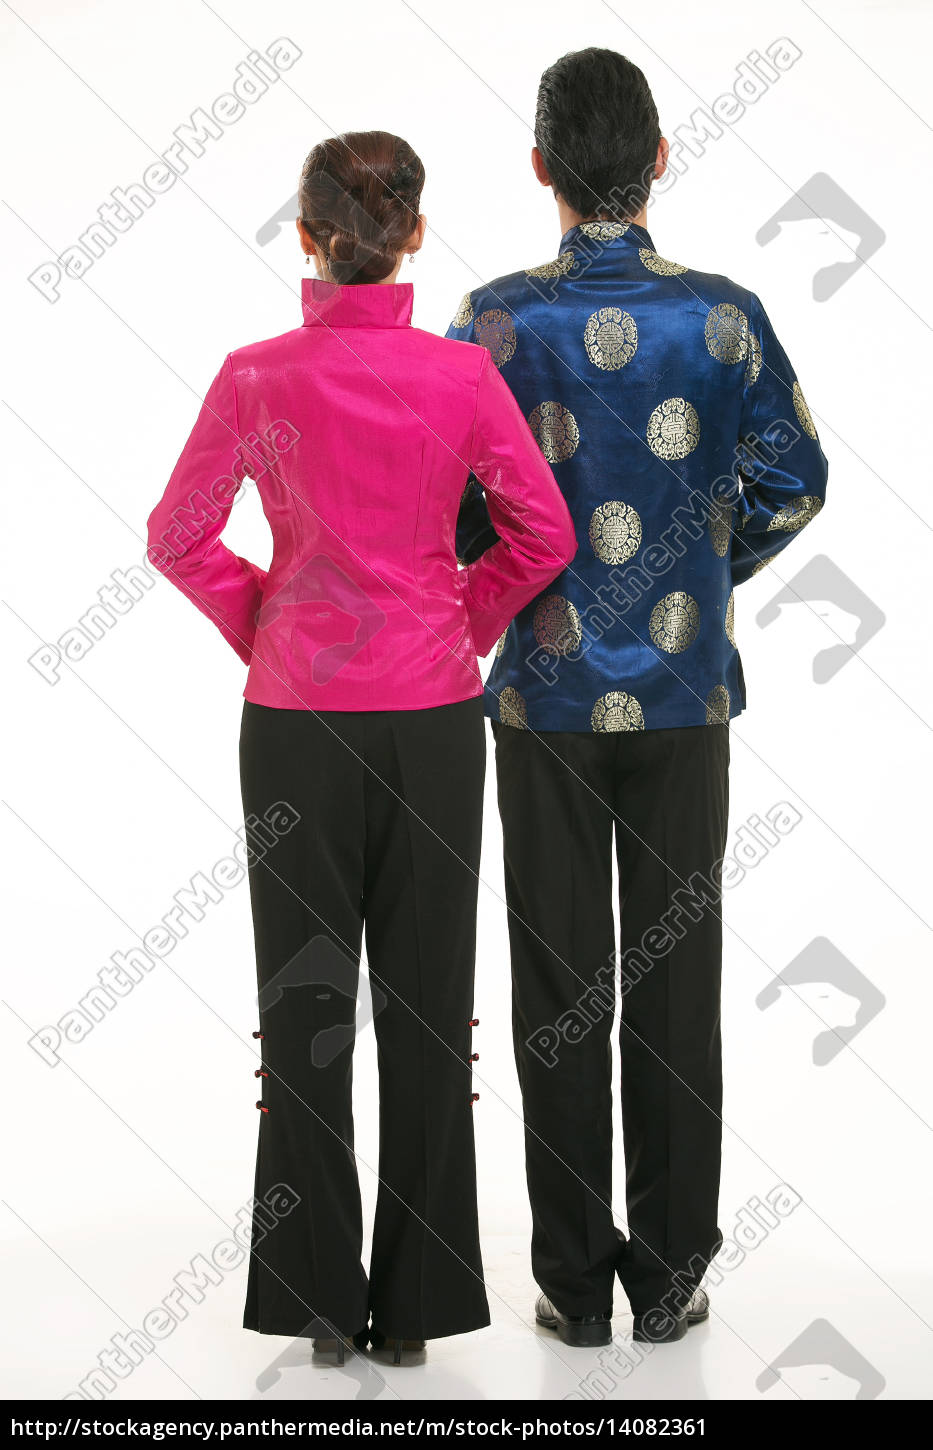 service staff, cotton wadded undercoat, cottonpadded jacket, greet guests, traditional chinese garments - 14082361